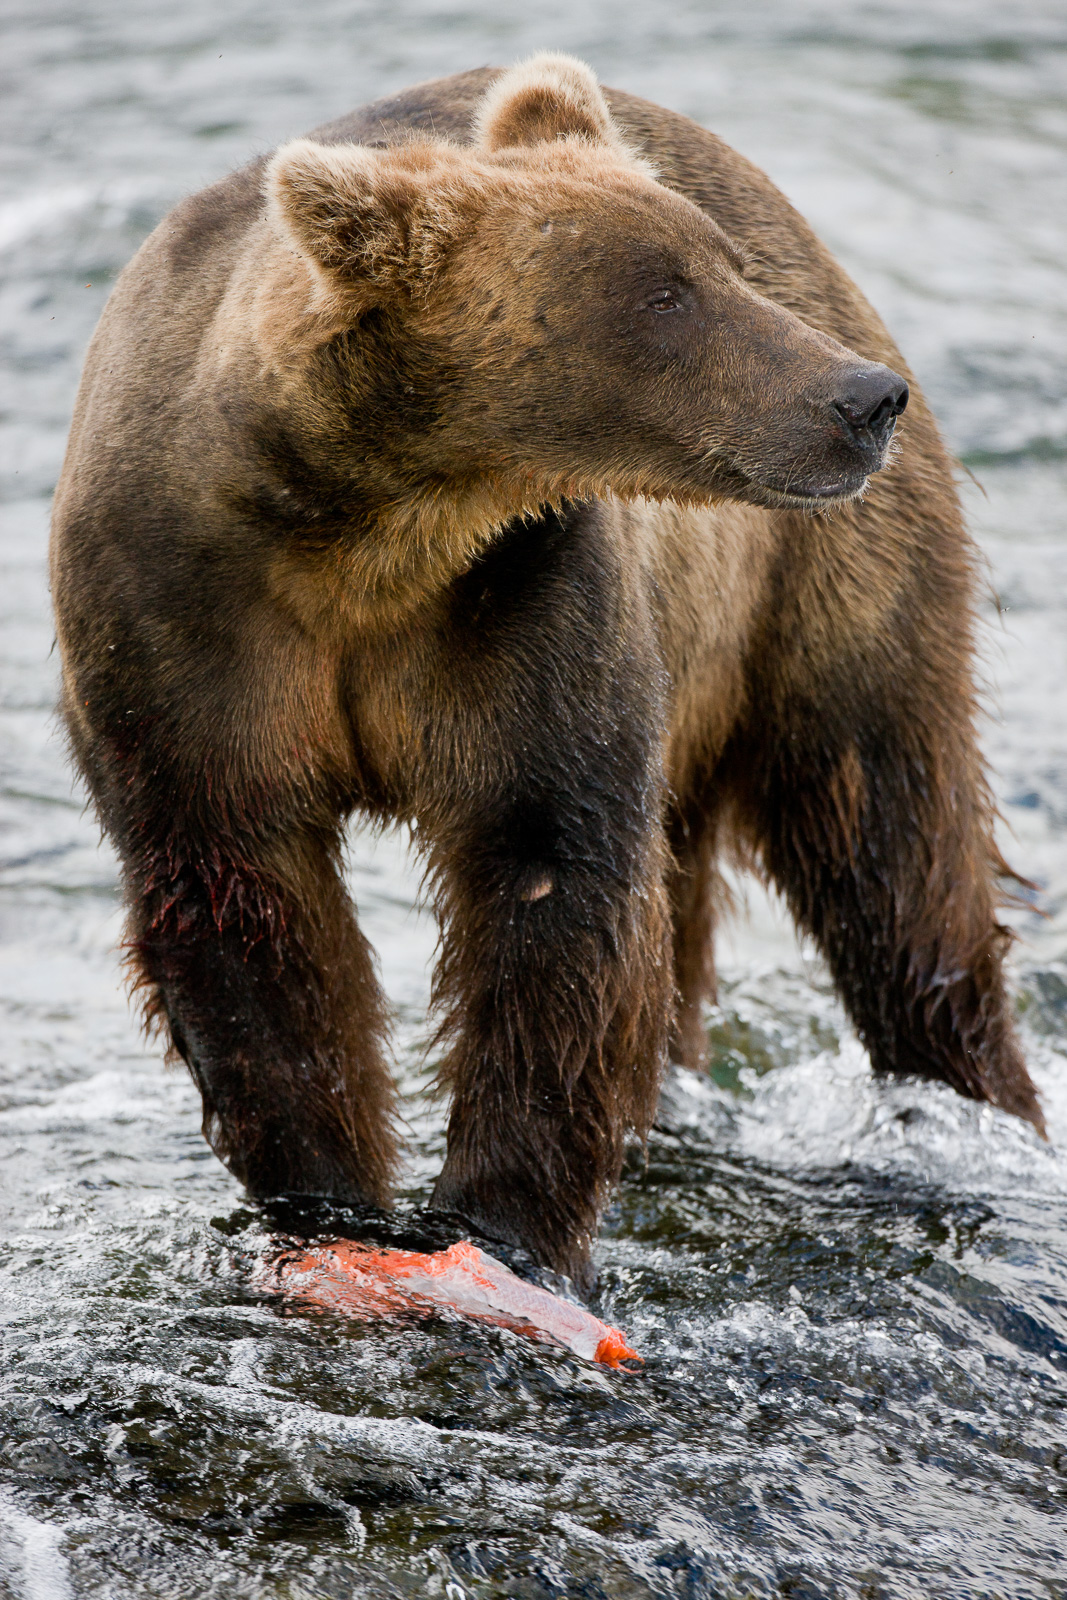 Fresh Catch,Grizzly,salmon,Wildlife,river,water,katmai national park,horizontal, bear, photo